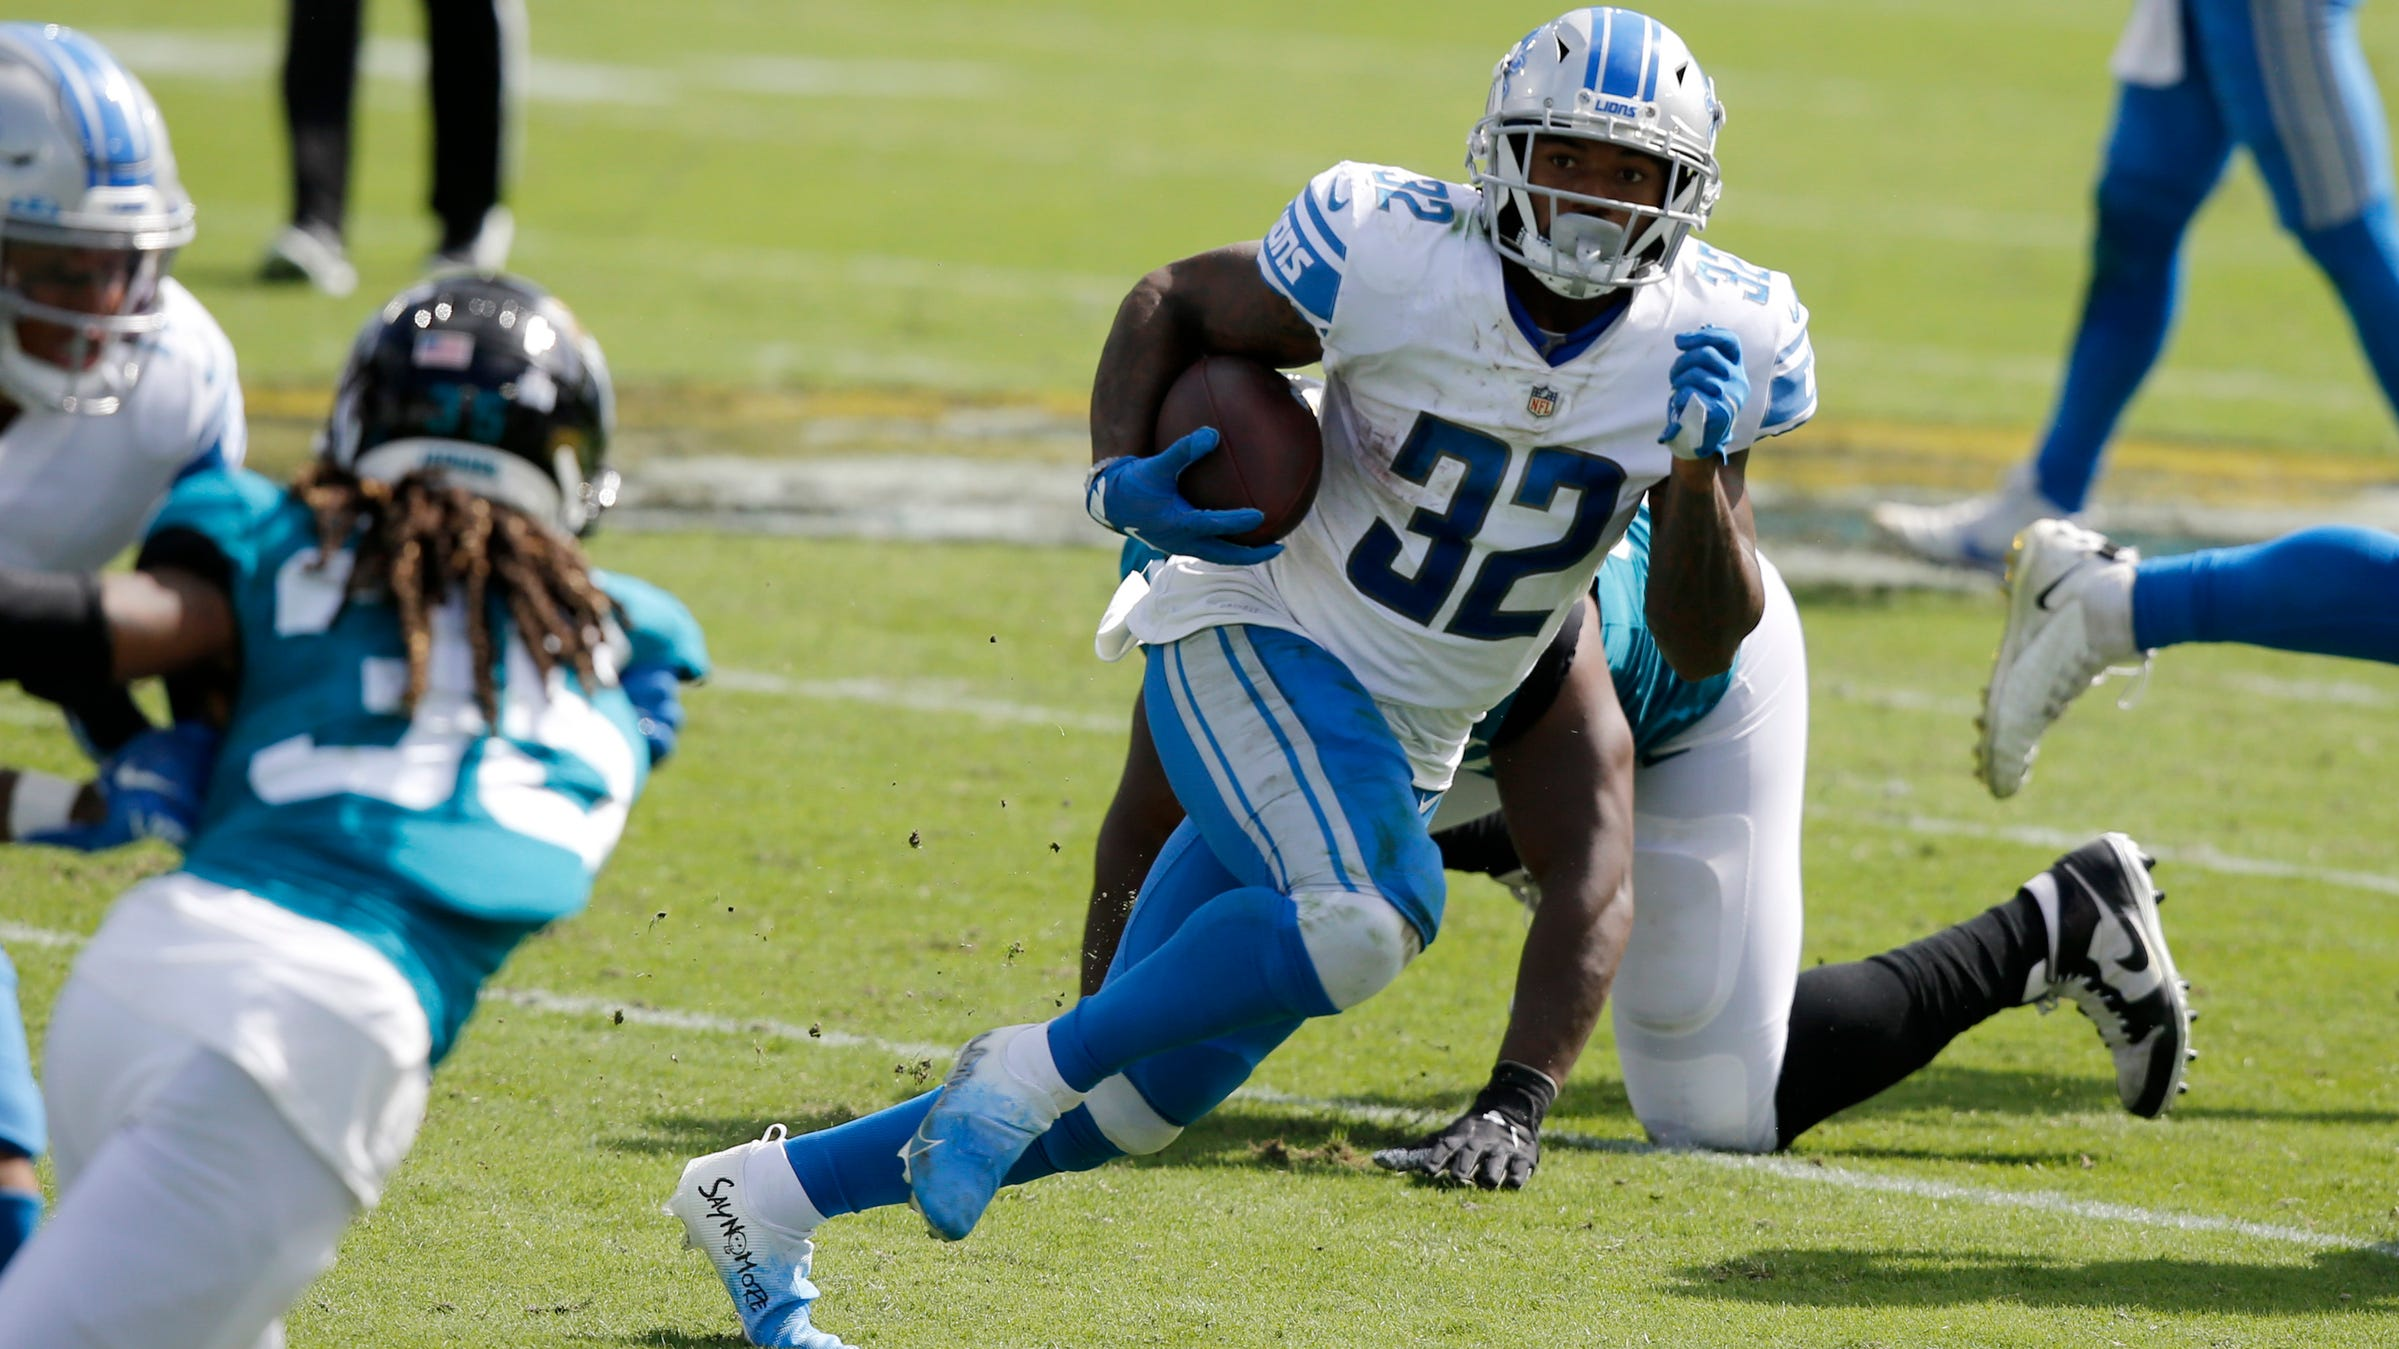 Detroit Lions running back D'Andre Swift runs the ball against the Jacksonville Jaguars during the second quarter Oct. 18, 2020, at TIAA Bank Field.